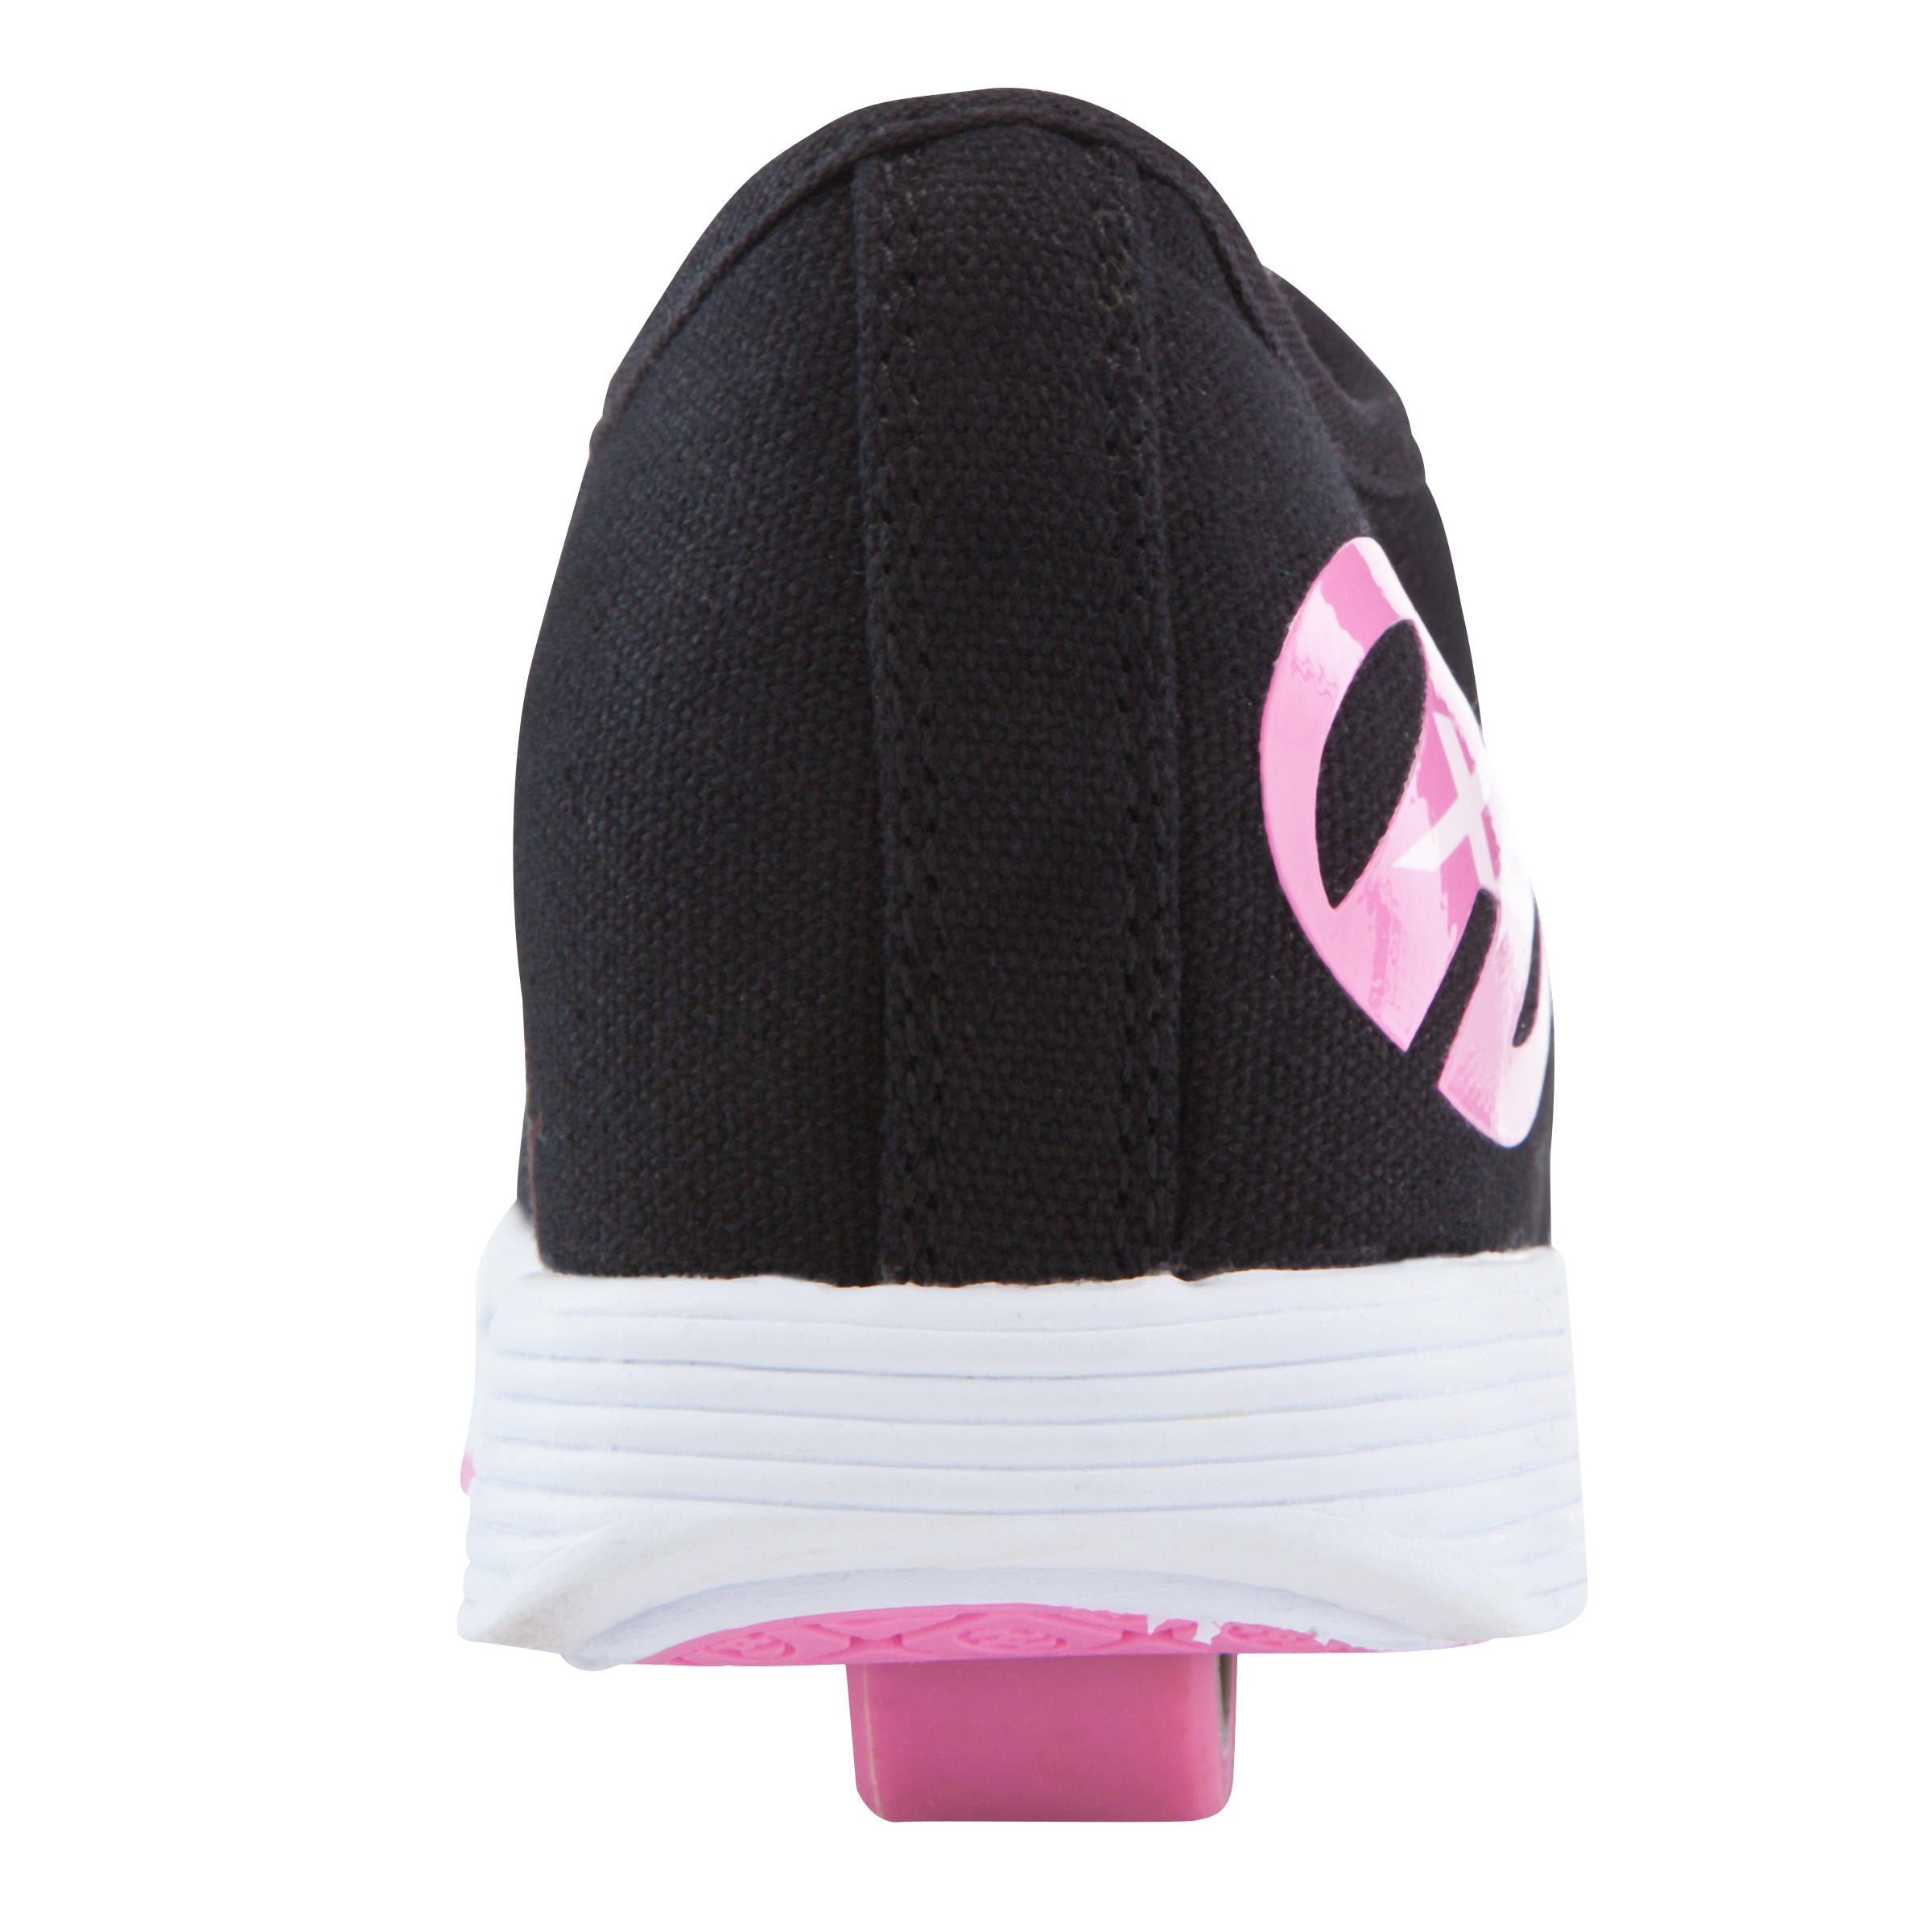 Heelys Girl Fresh À Noire Lila Chaussure Roulettes N8nm0w